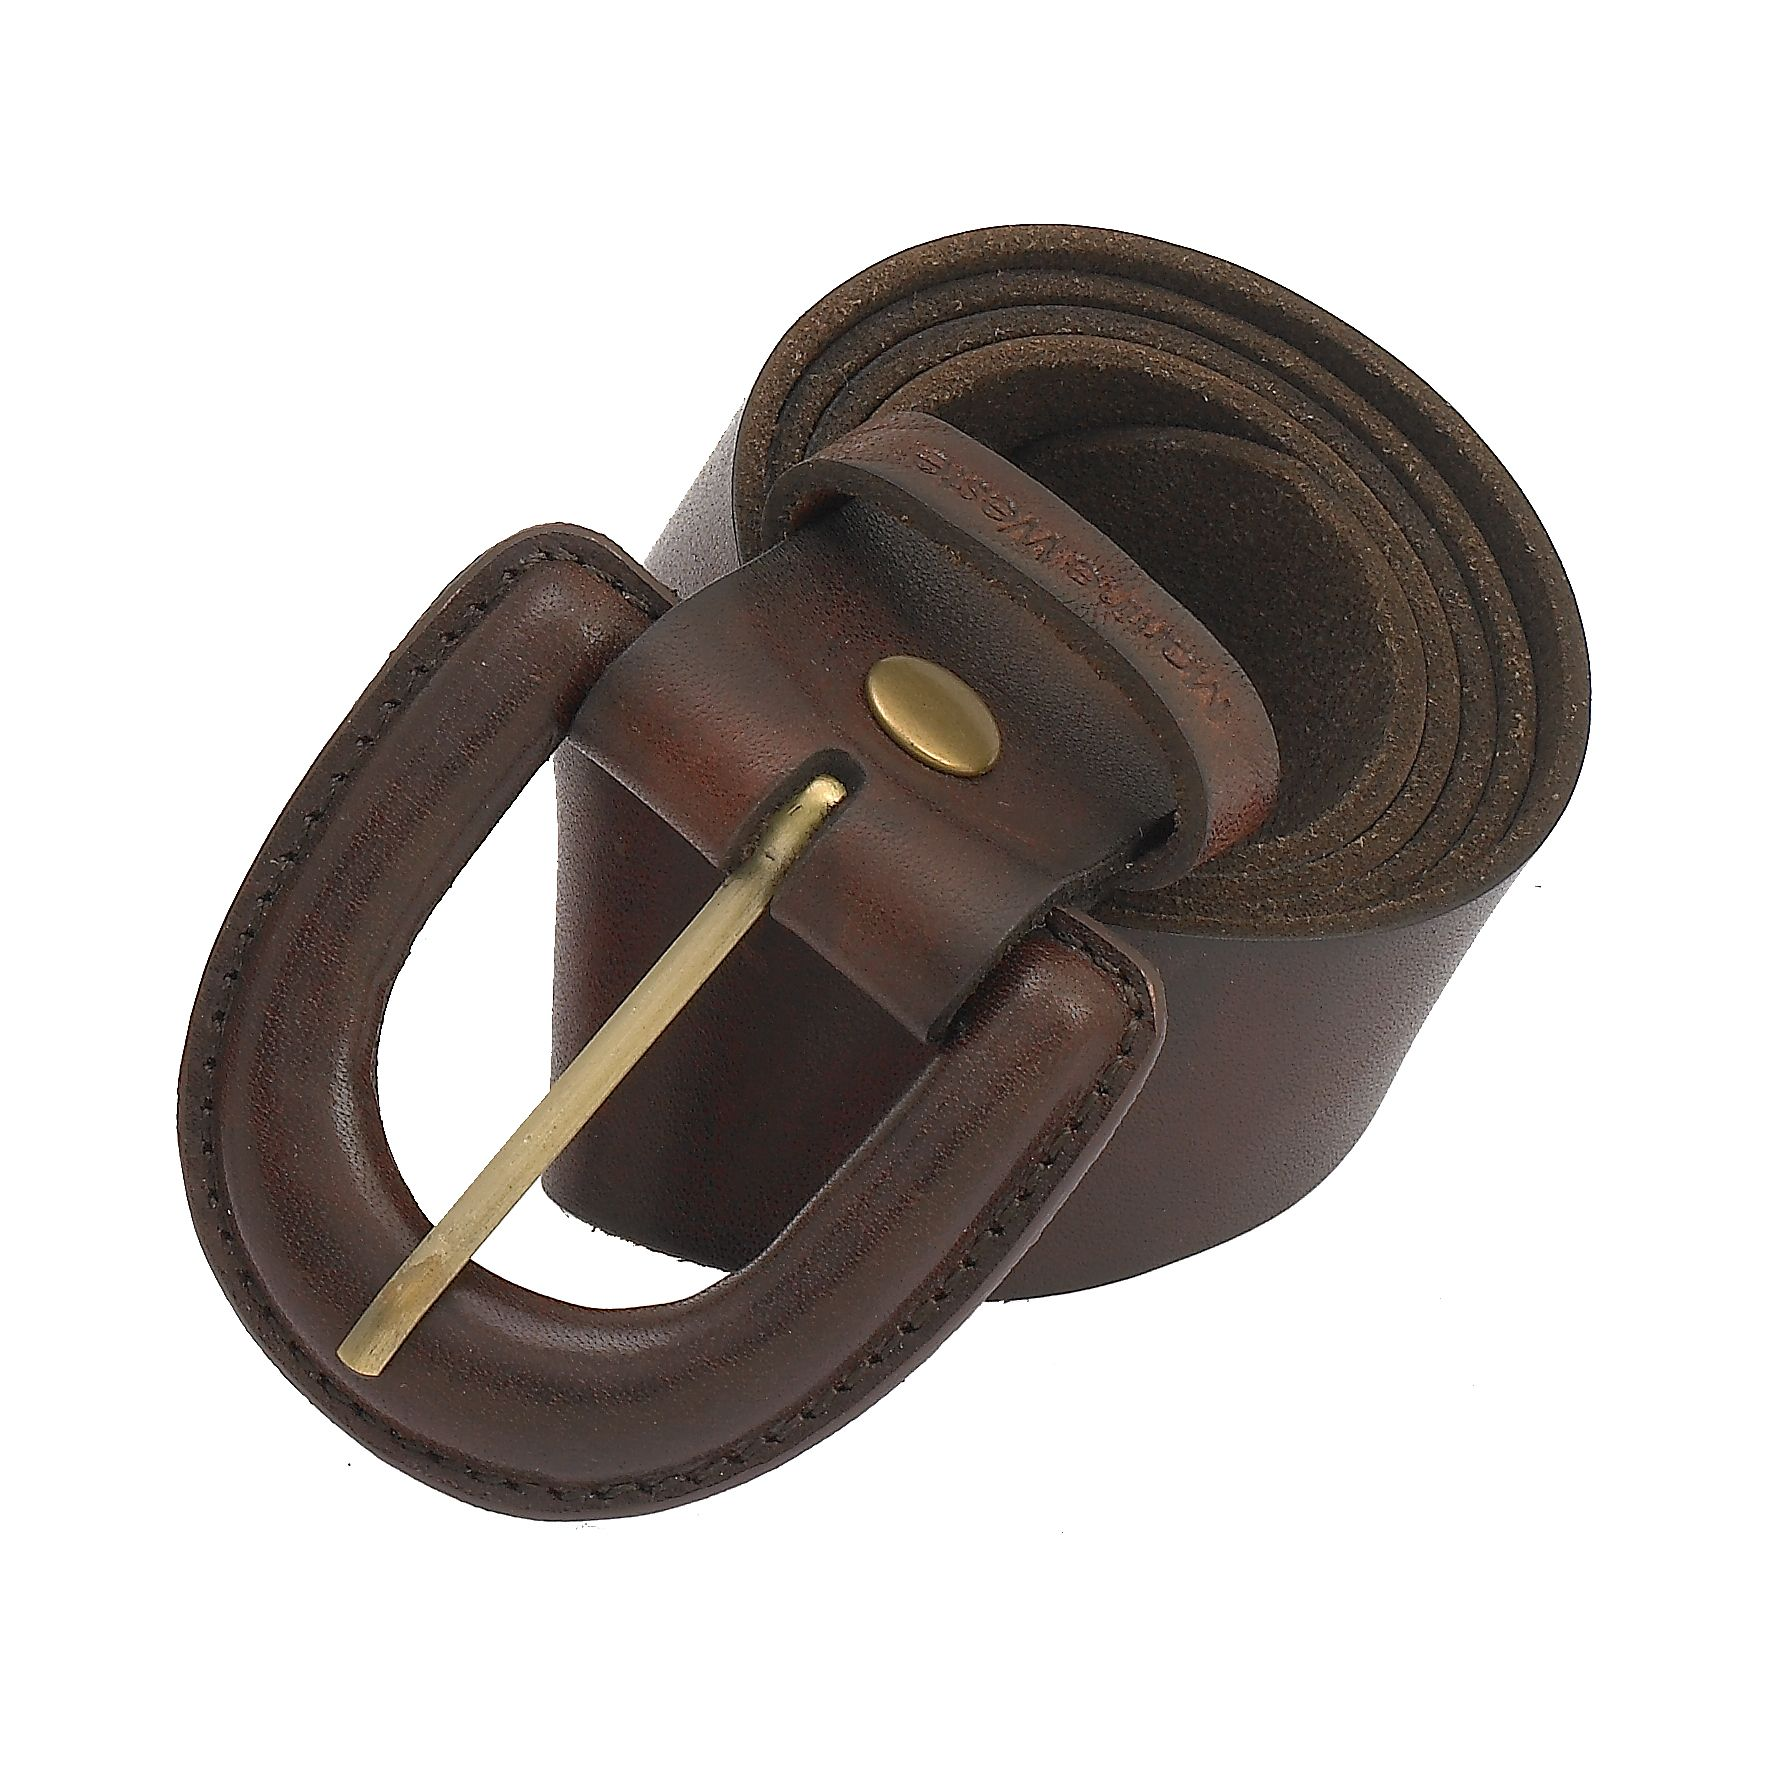 Modern Leather Covered Buckle Belt